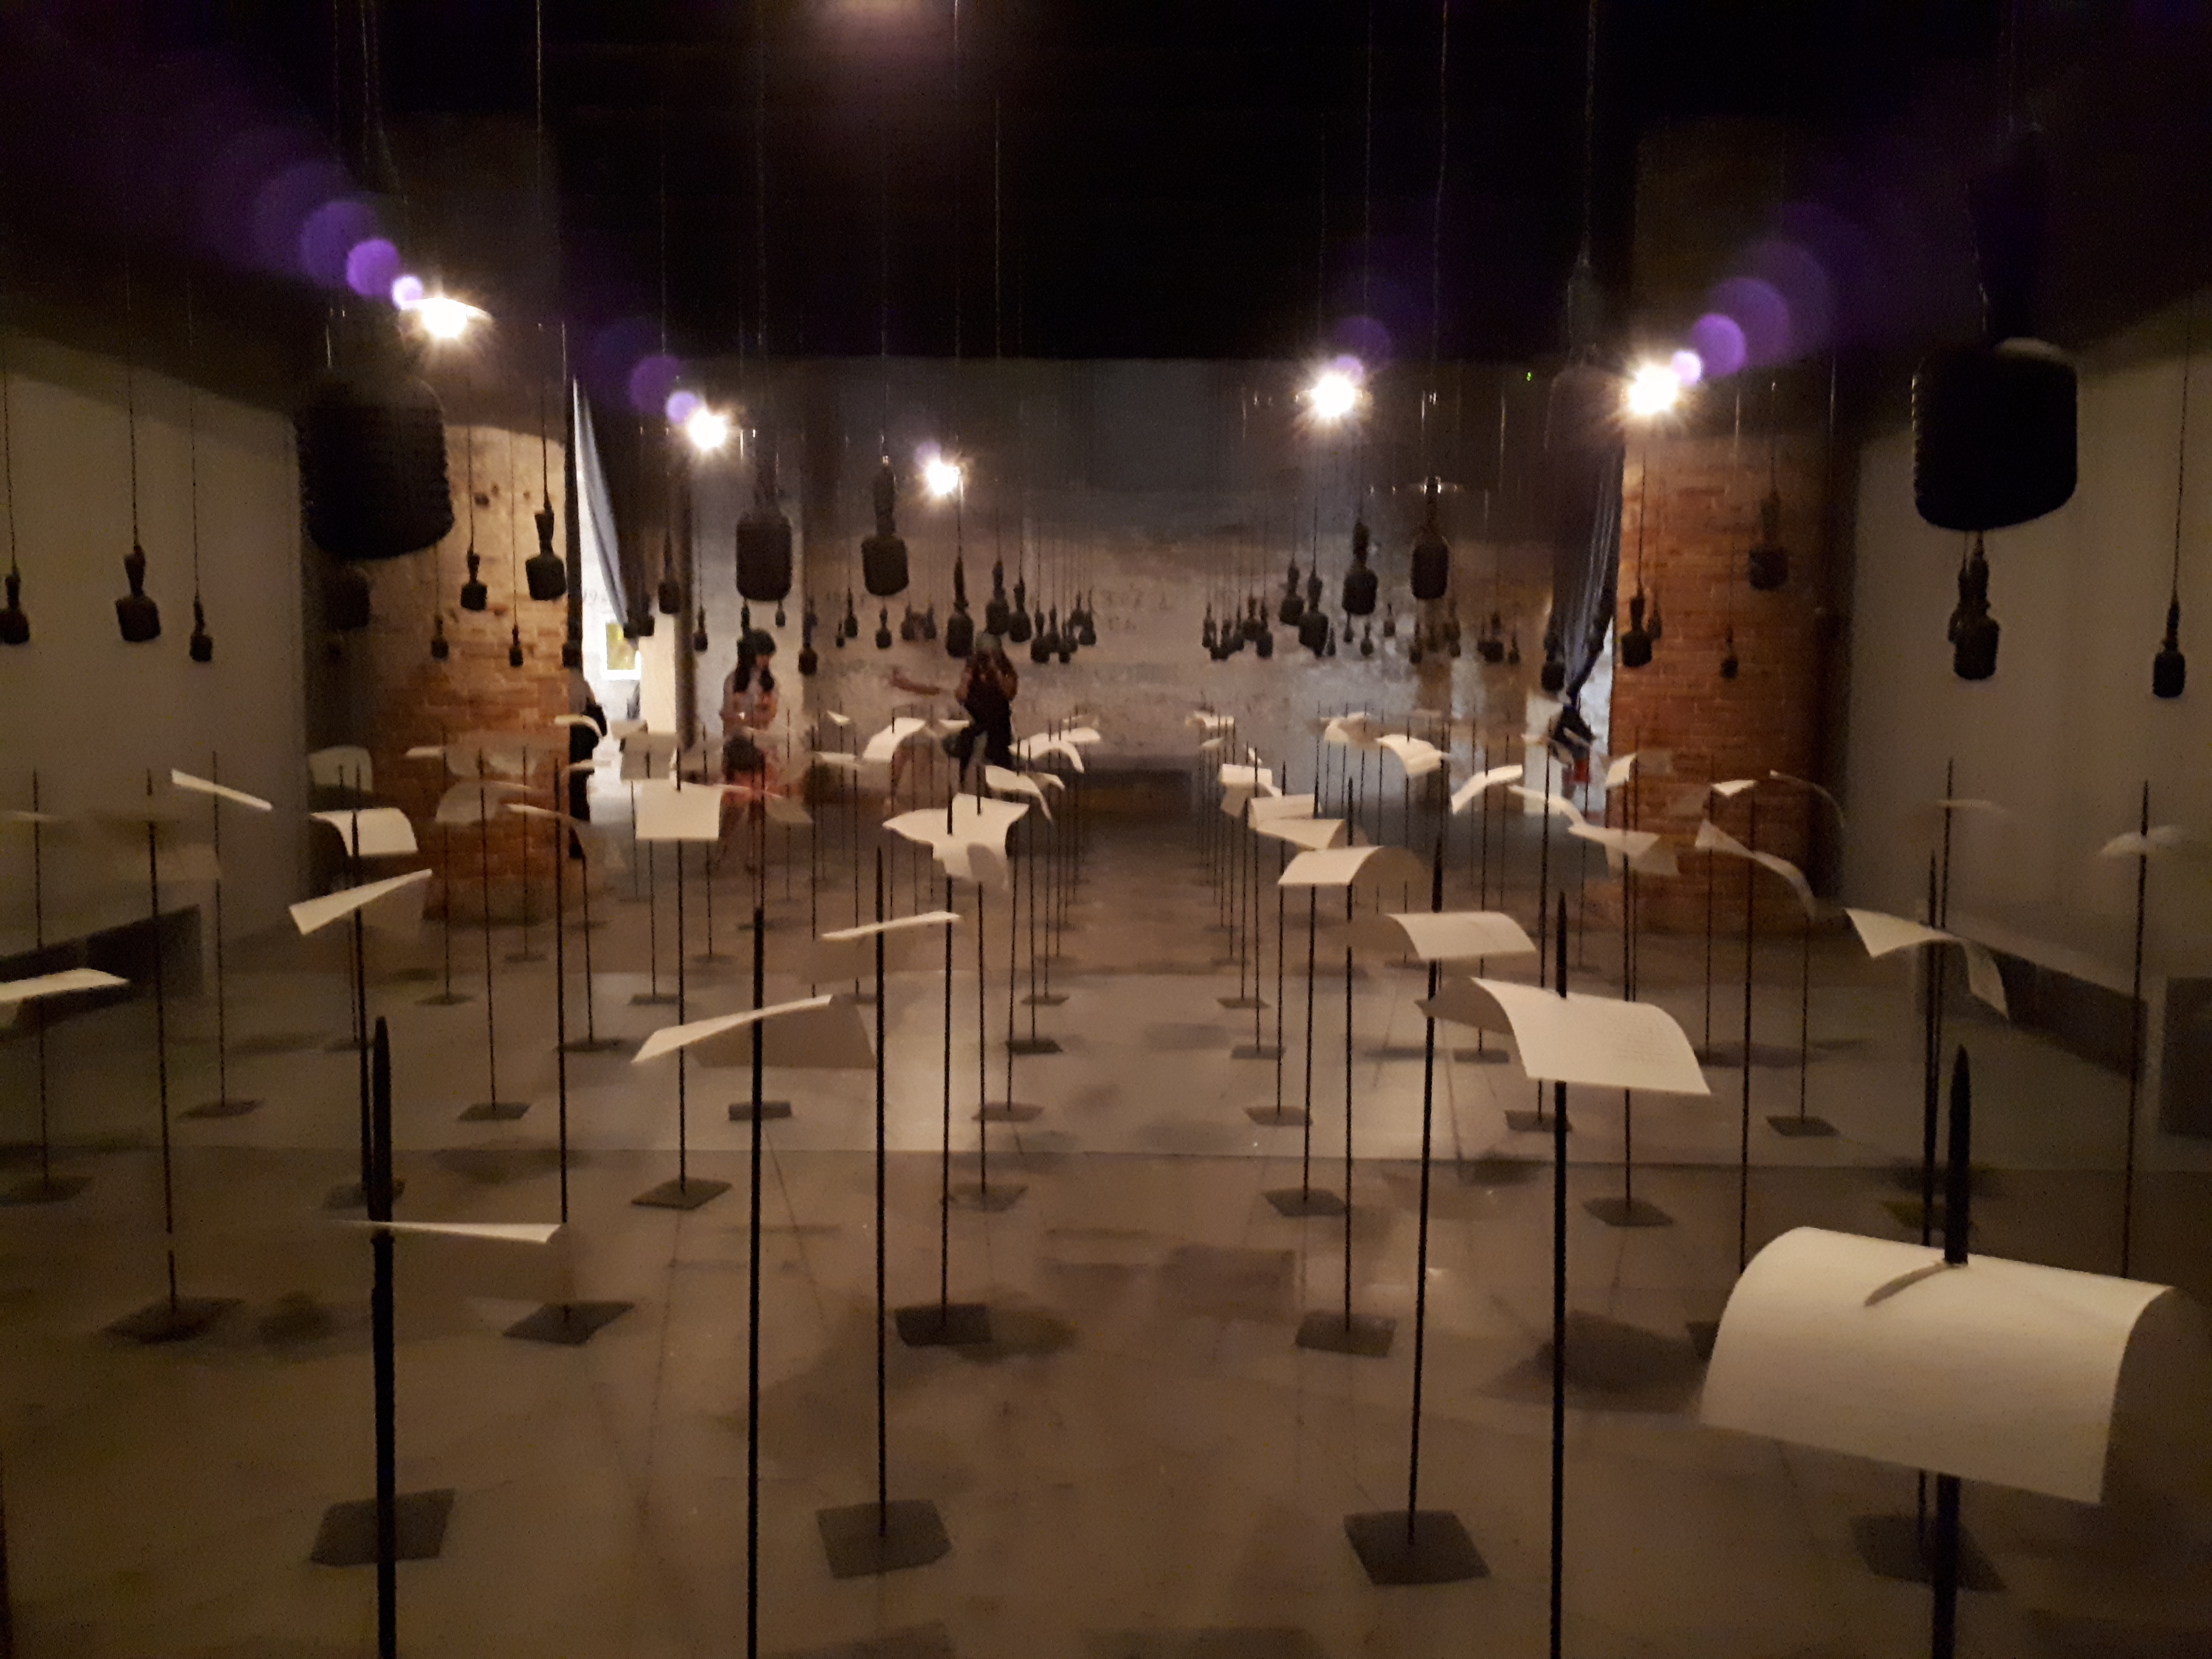 shilpa-gupta-for-in-your-tongue-i-cannot-fit-sound-installation-with-100-speakers-microphones-printed-text-and-metal-stands-2017-18